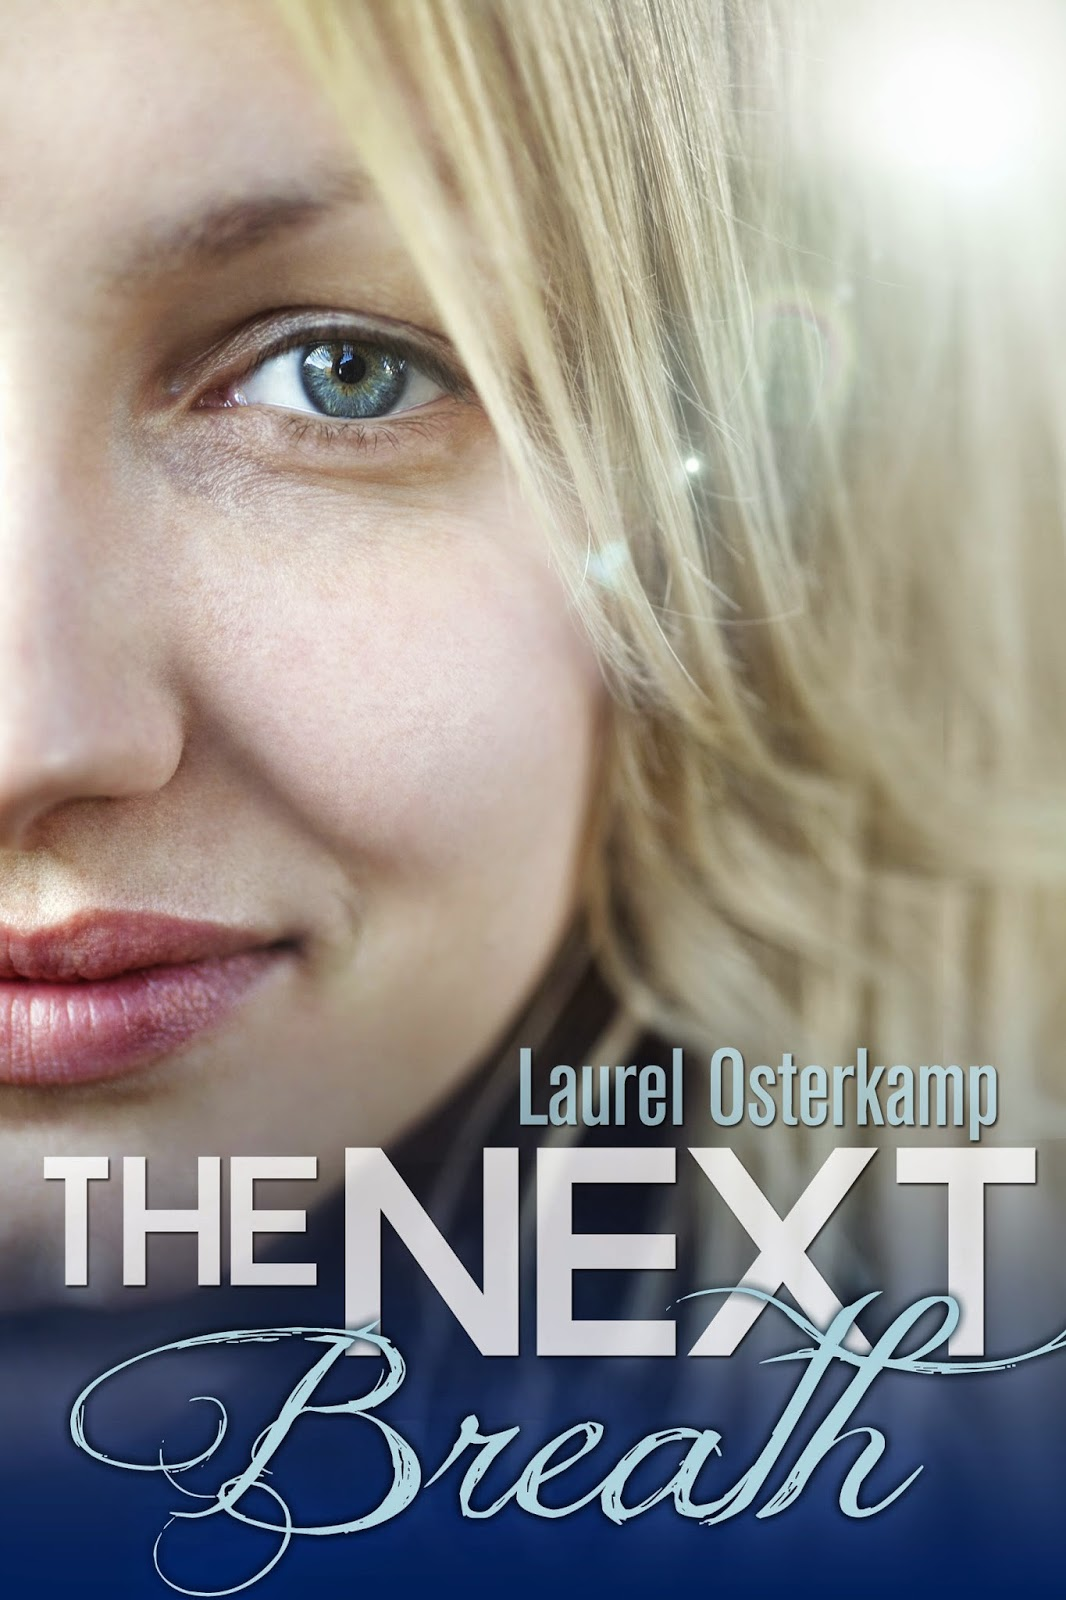 https://www.goodreads.com/book/show/23208650-the-next-breath